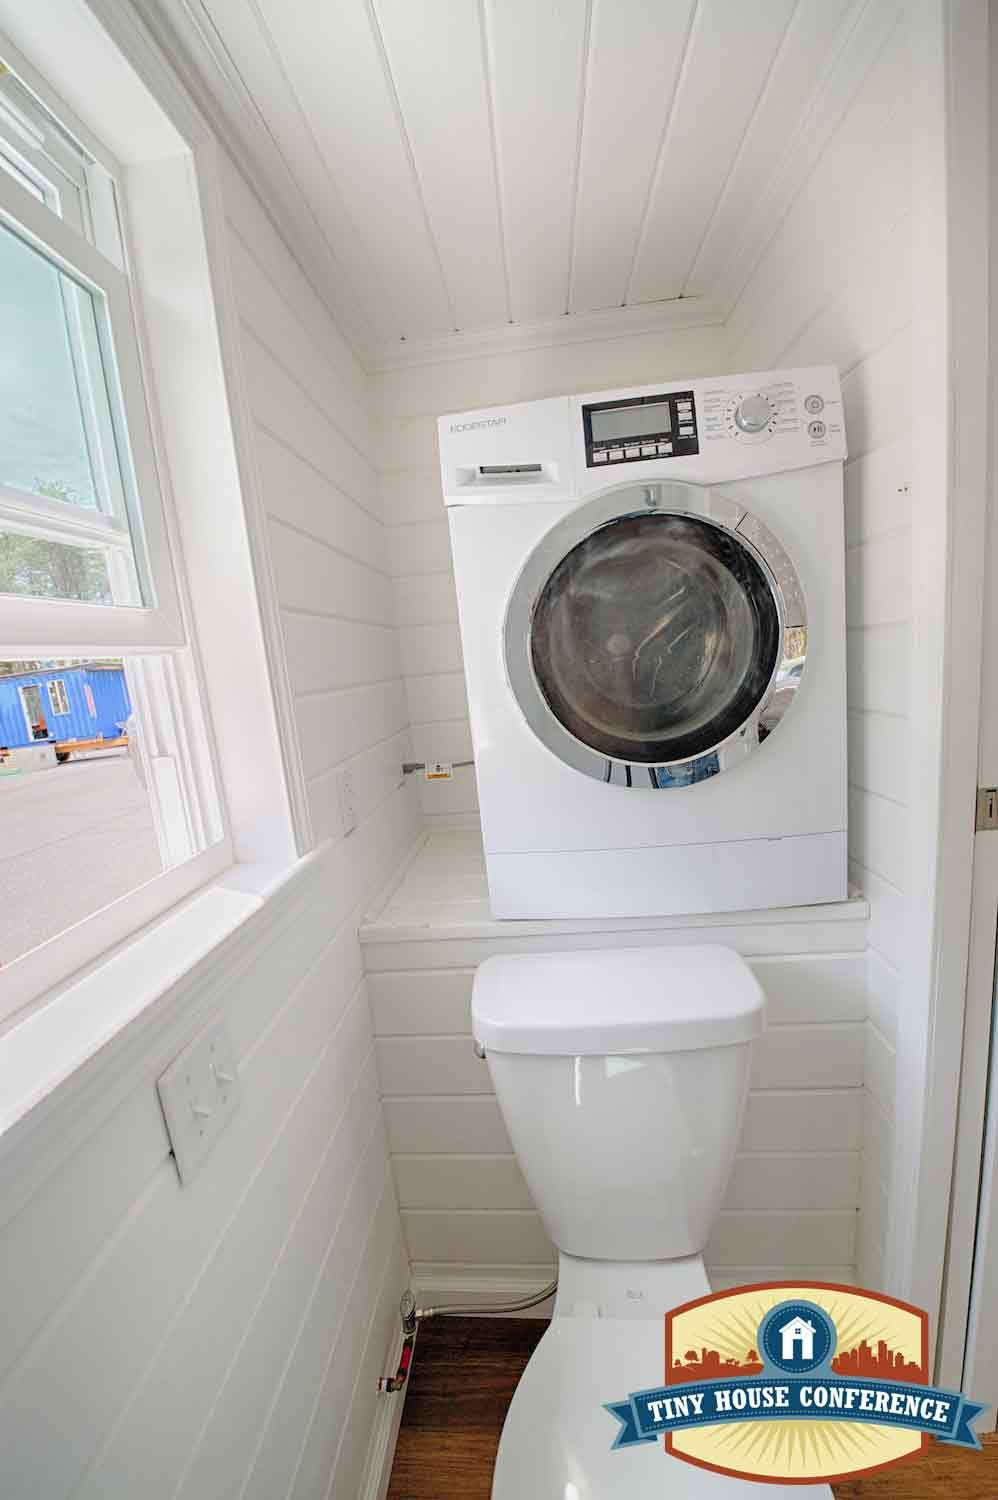 A Ventless Washer Dryer Combo In Tiny House Bathroom At The Tinyhouseconference